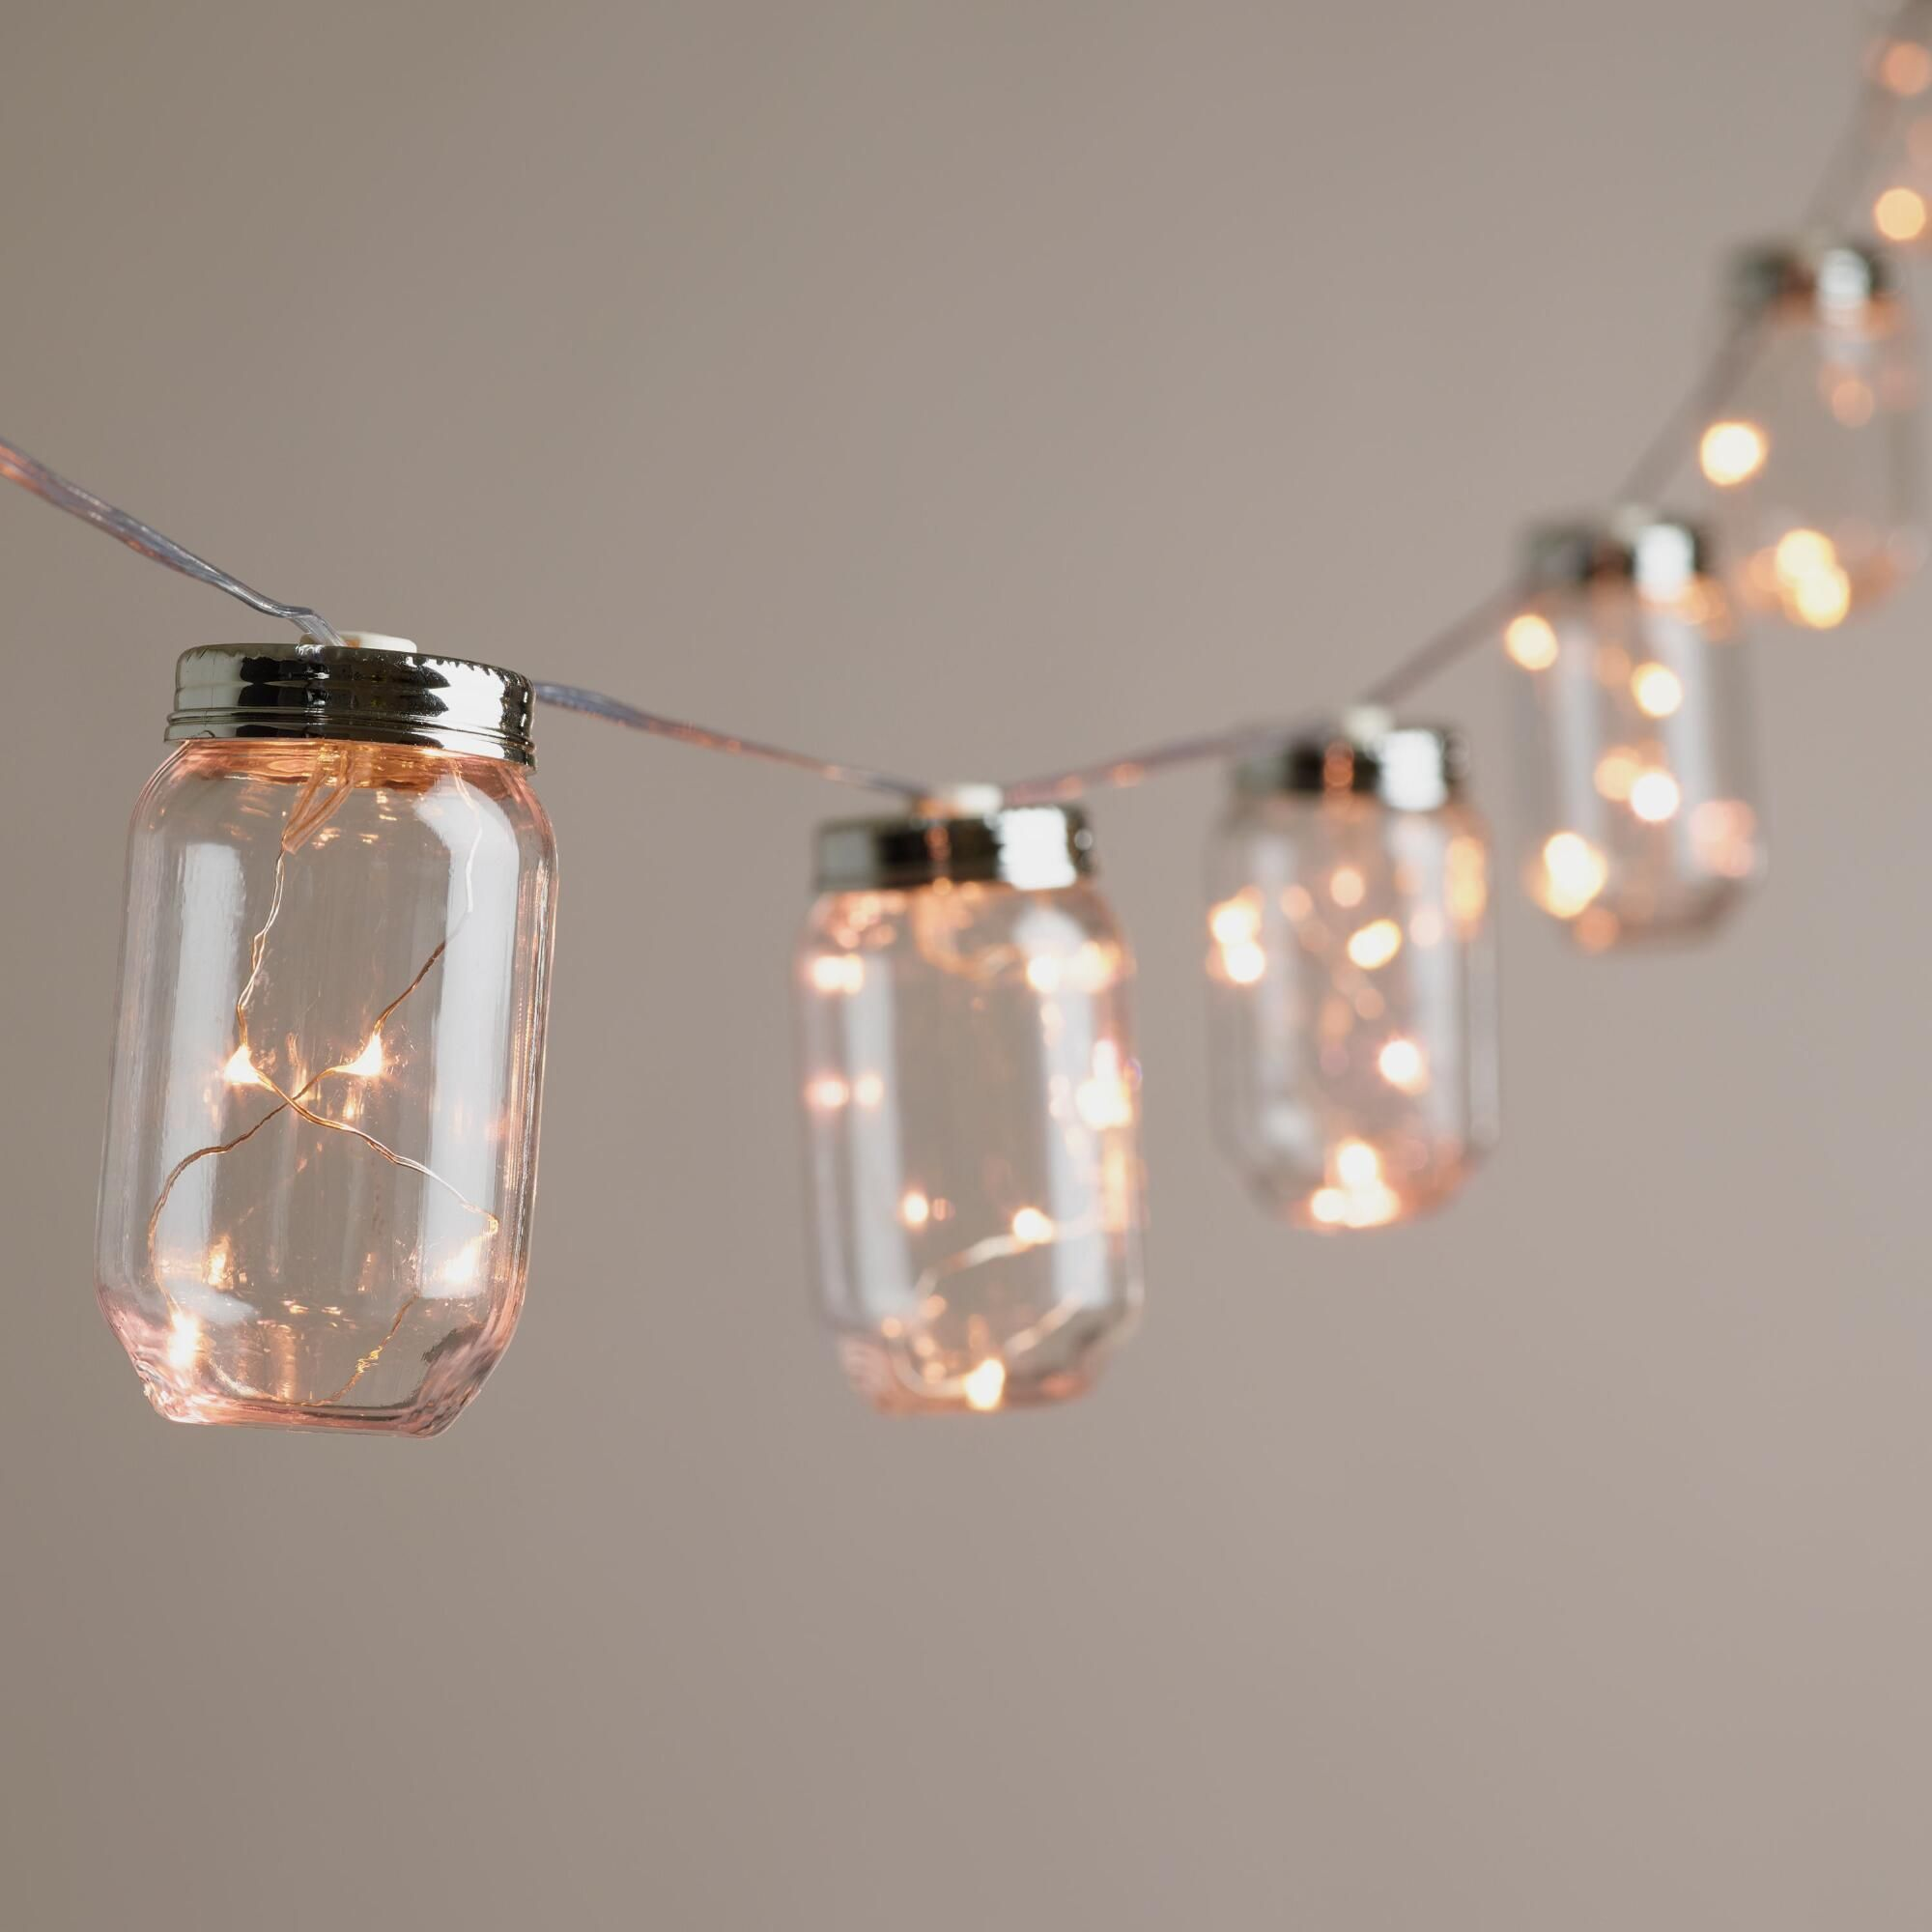 Firefly String Lights Amusing Our Exclusive String Lights Feature 10 World Market Favorite Mason Design Inspiration